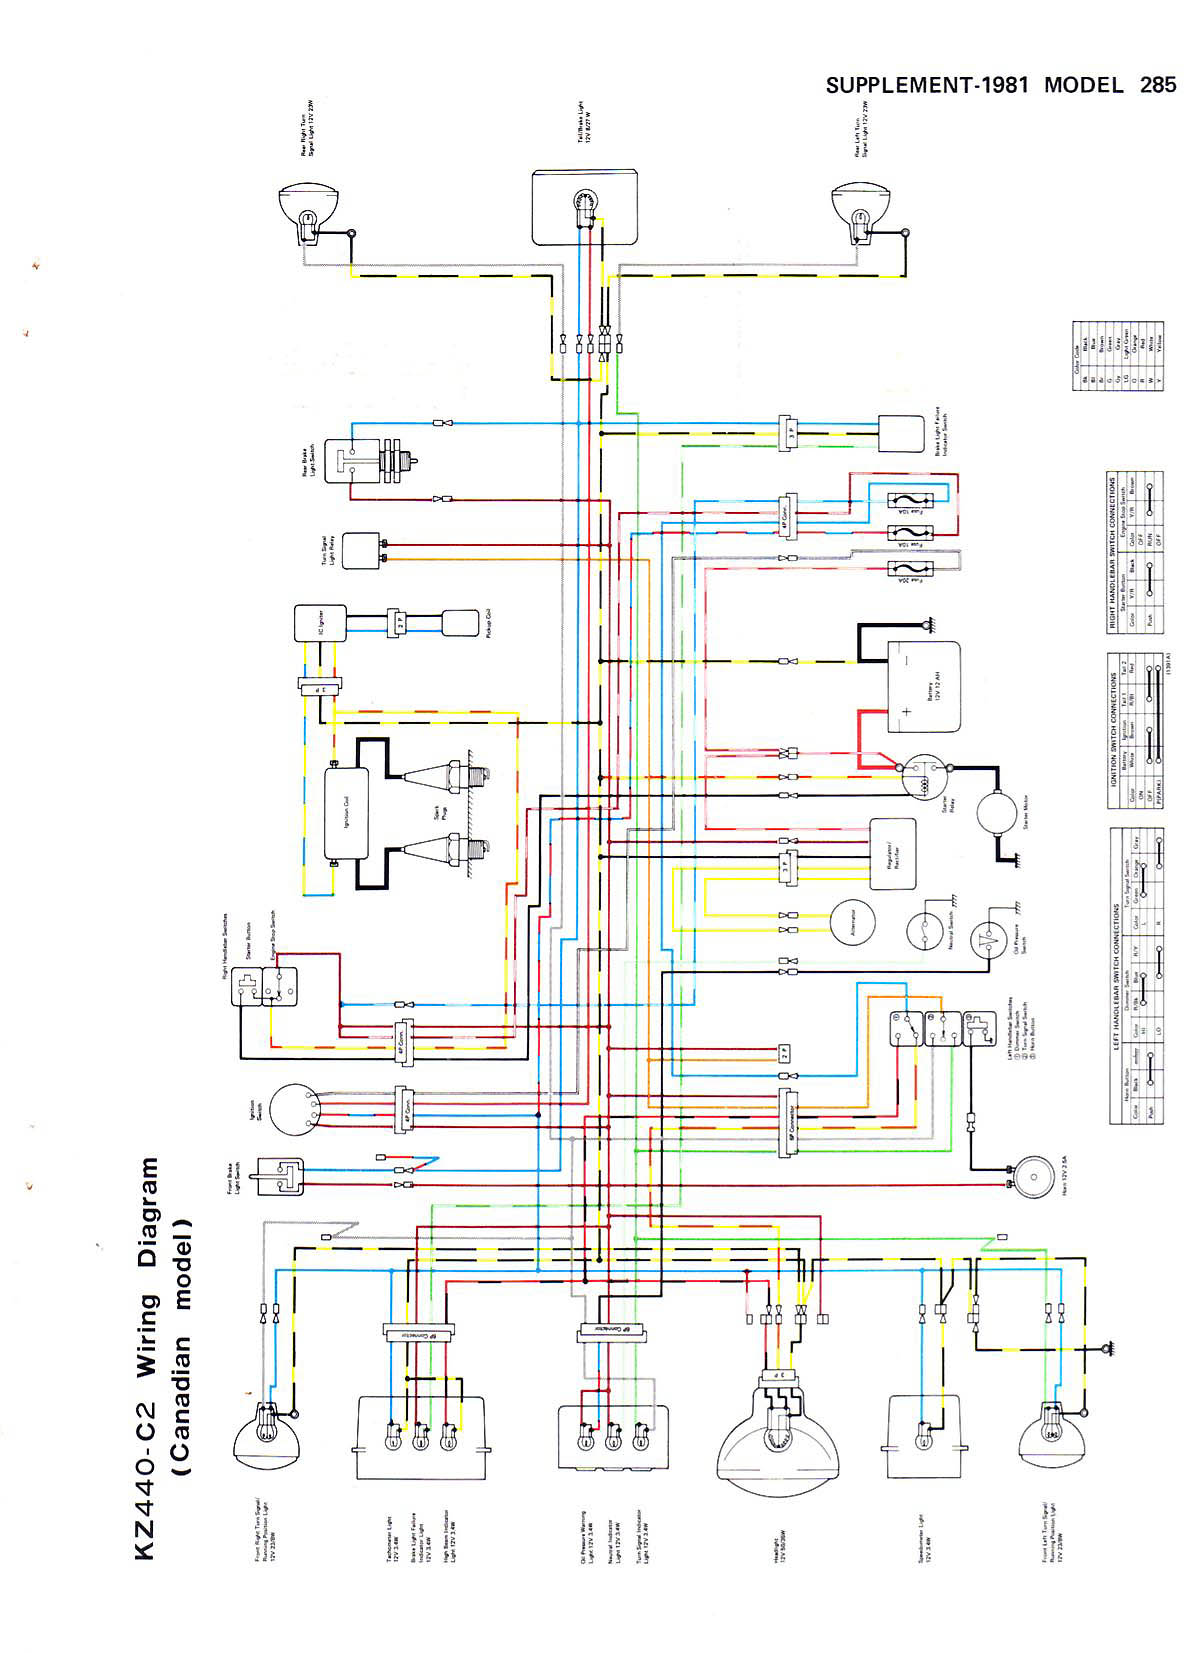 Kawasaki KZ 440 %2780 a %2782 Service Manual_Page_282 index of kz440 wiring diagrams kz440 wiring diagram at creativeand.co